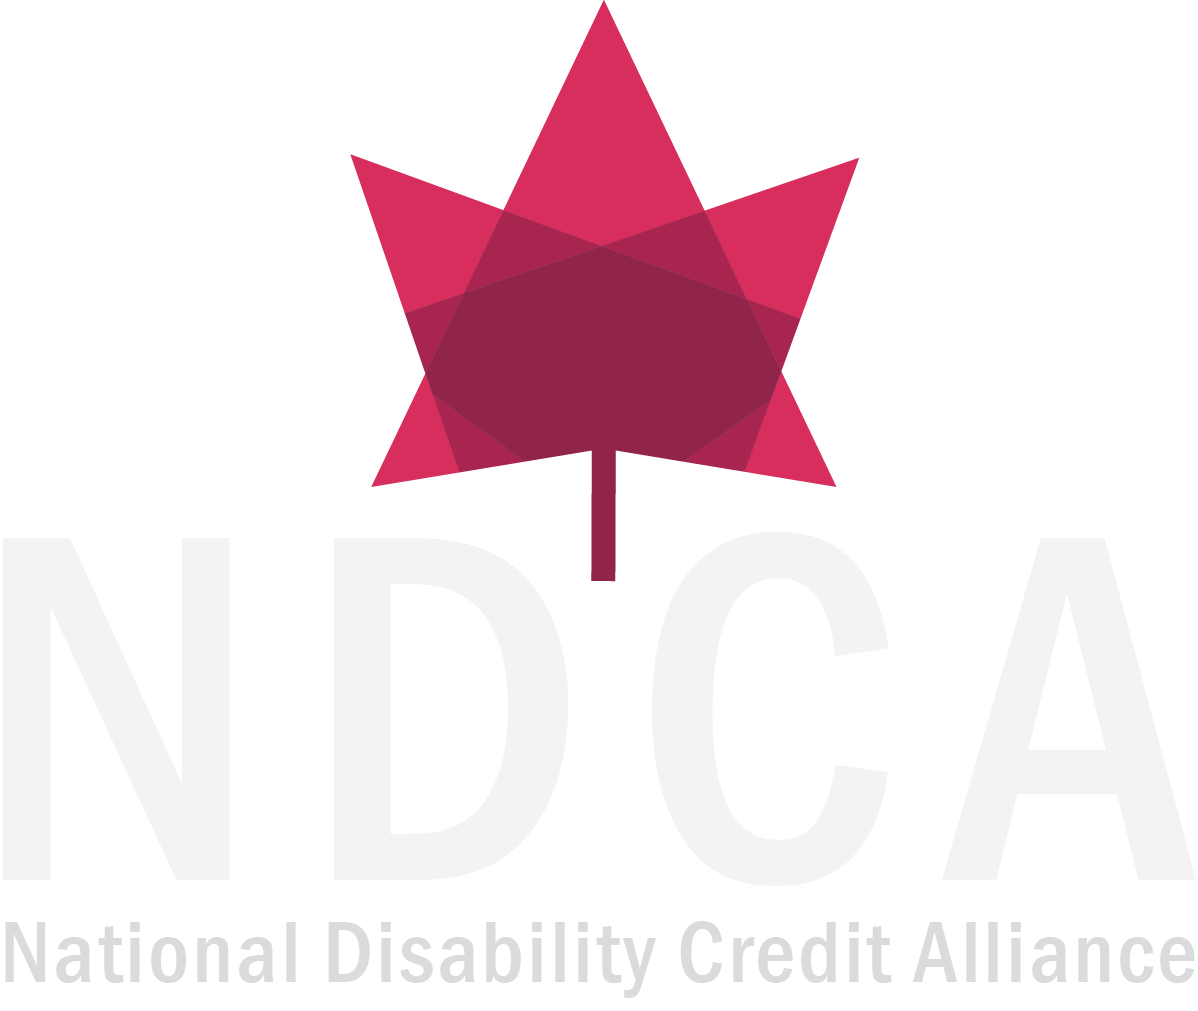 NDCA - National Disability Credit Alliance